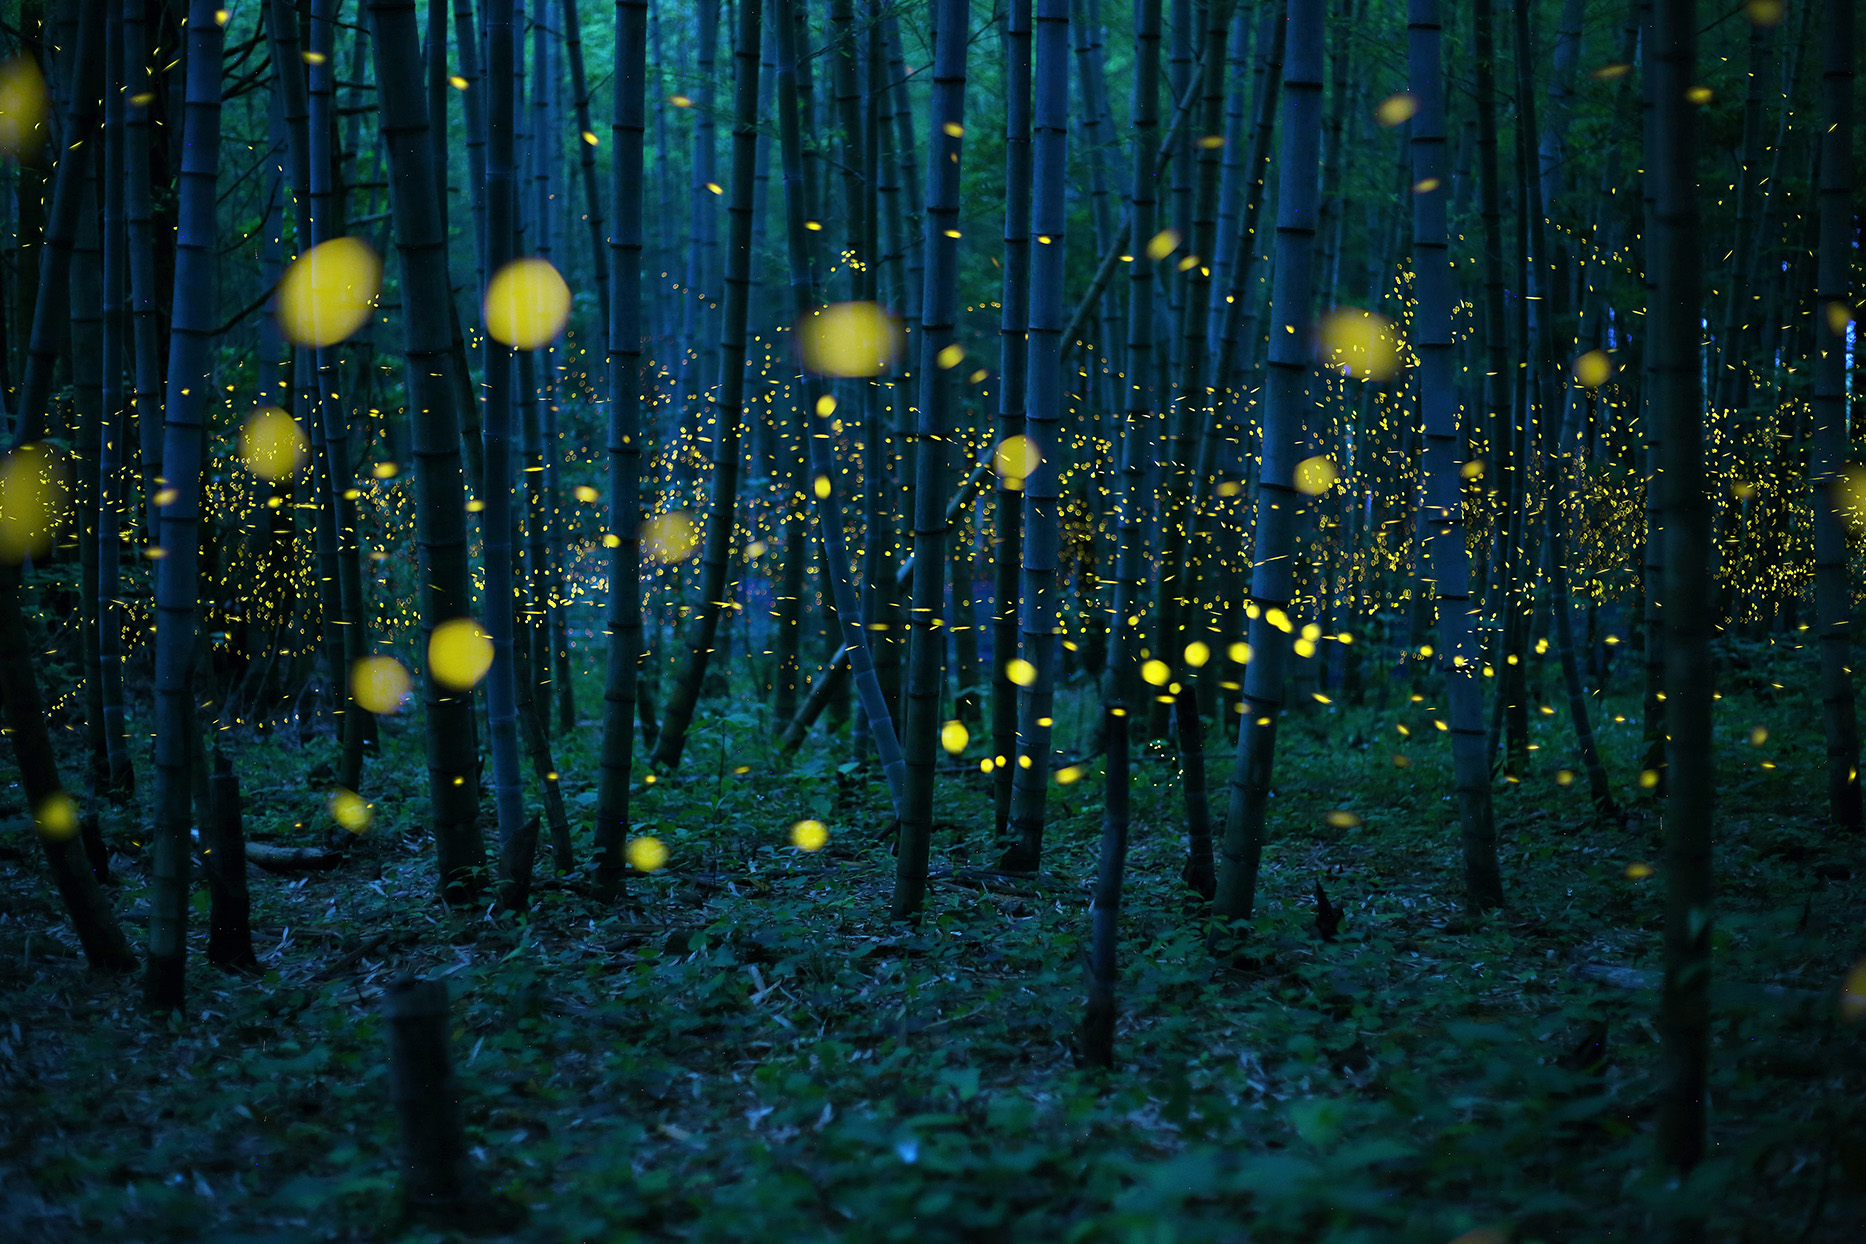 Glowing dragonflies in a dark forest of thin trees